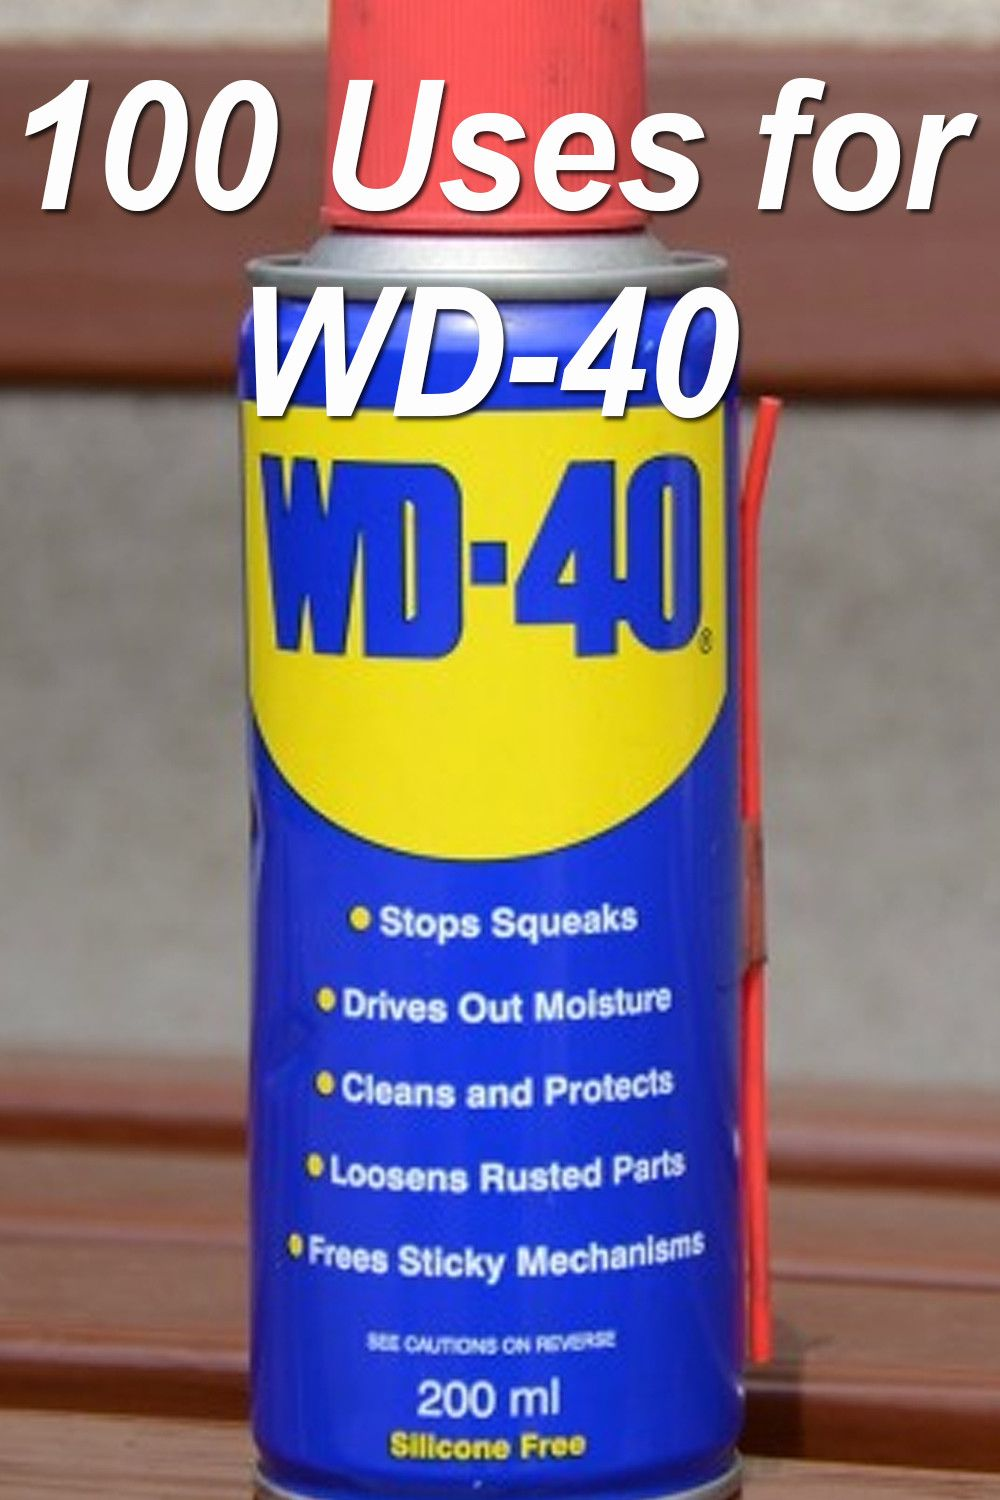 Borderline Genius Wd 40 Uses You Had No Idea About With Images Wd 40 Uses Wd 40 Genius